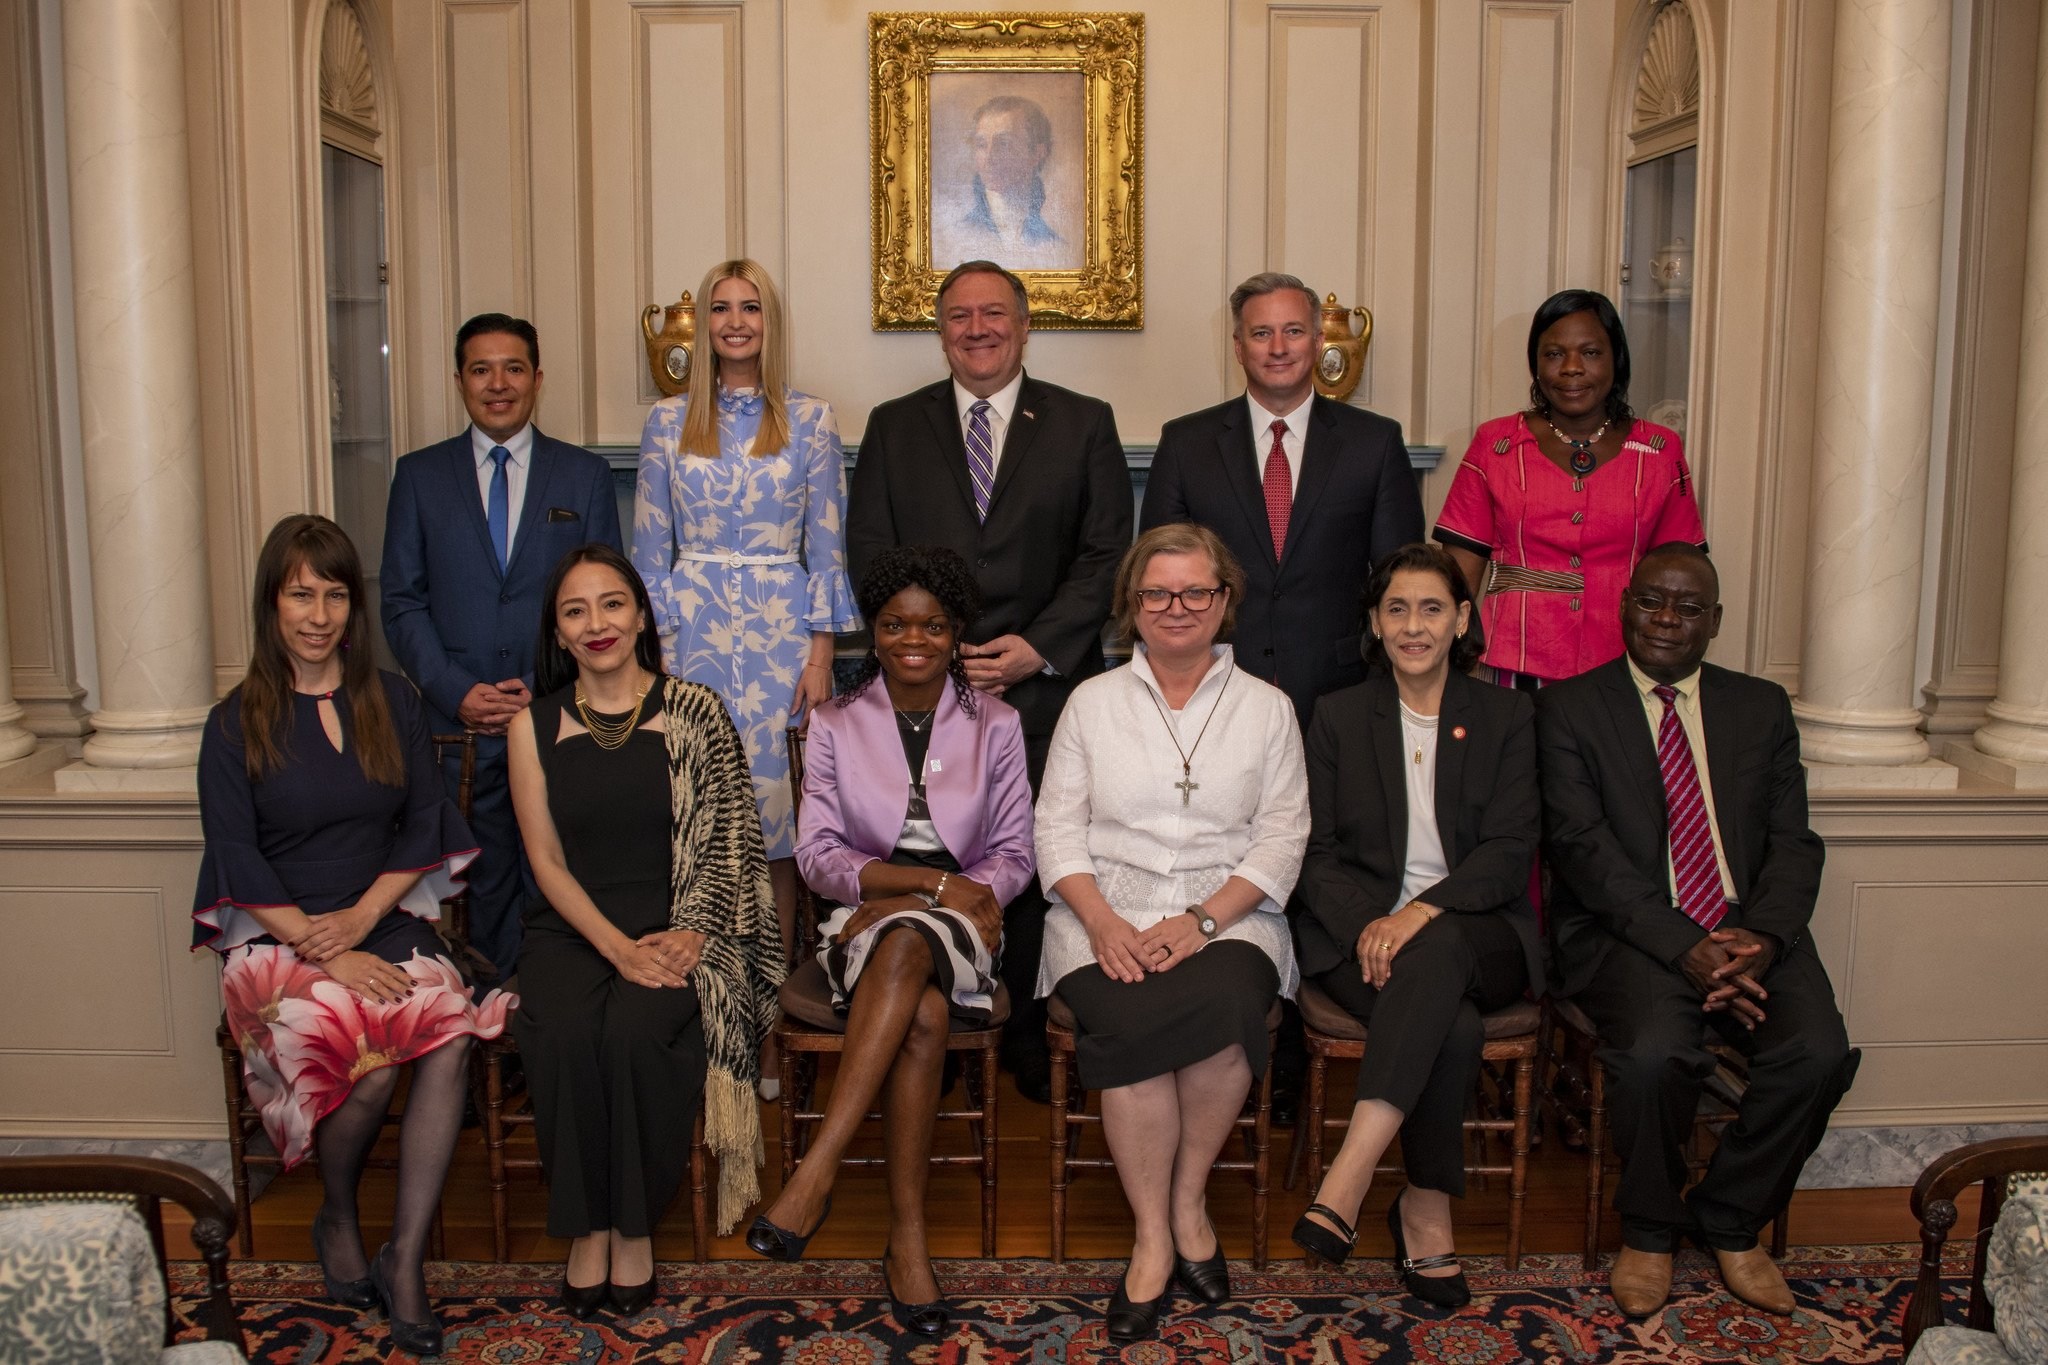 The eight TIP Report Heroes with Secretary of State Michael R. Pompeo, Advisor to the President Ivanka Trump, and Ambassador-at-Large to Monitor and Combat Trafficking in Persons John Cotton Richmond